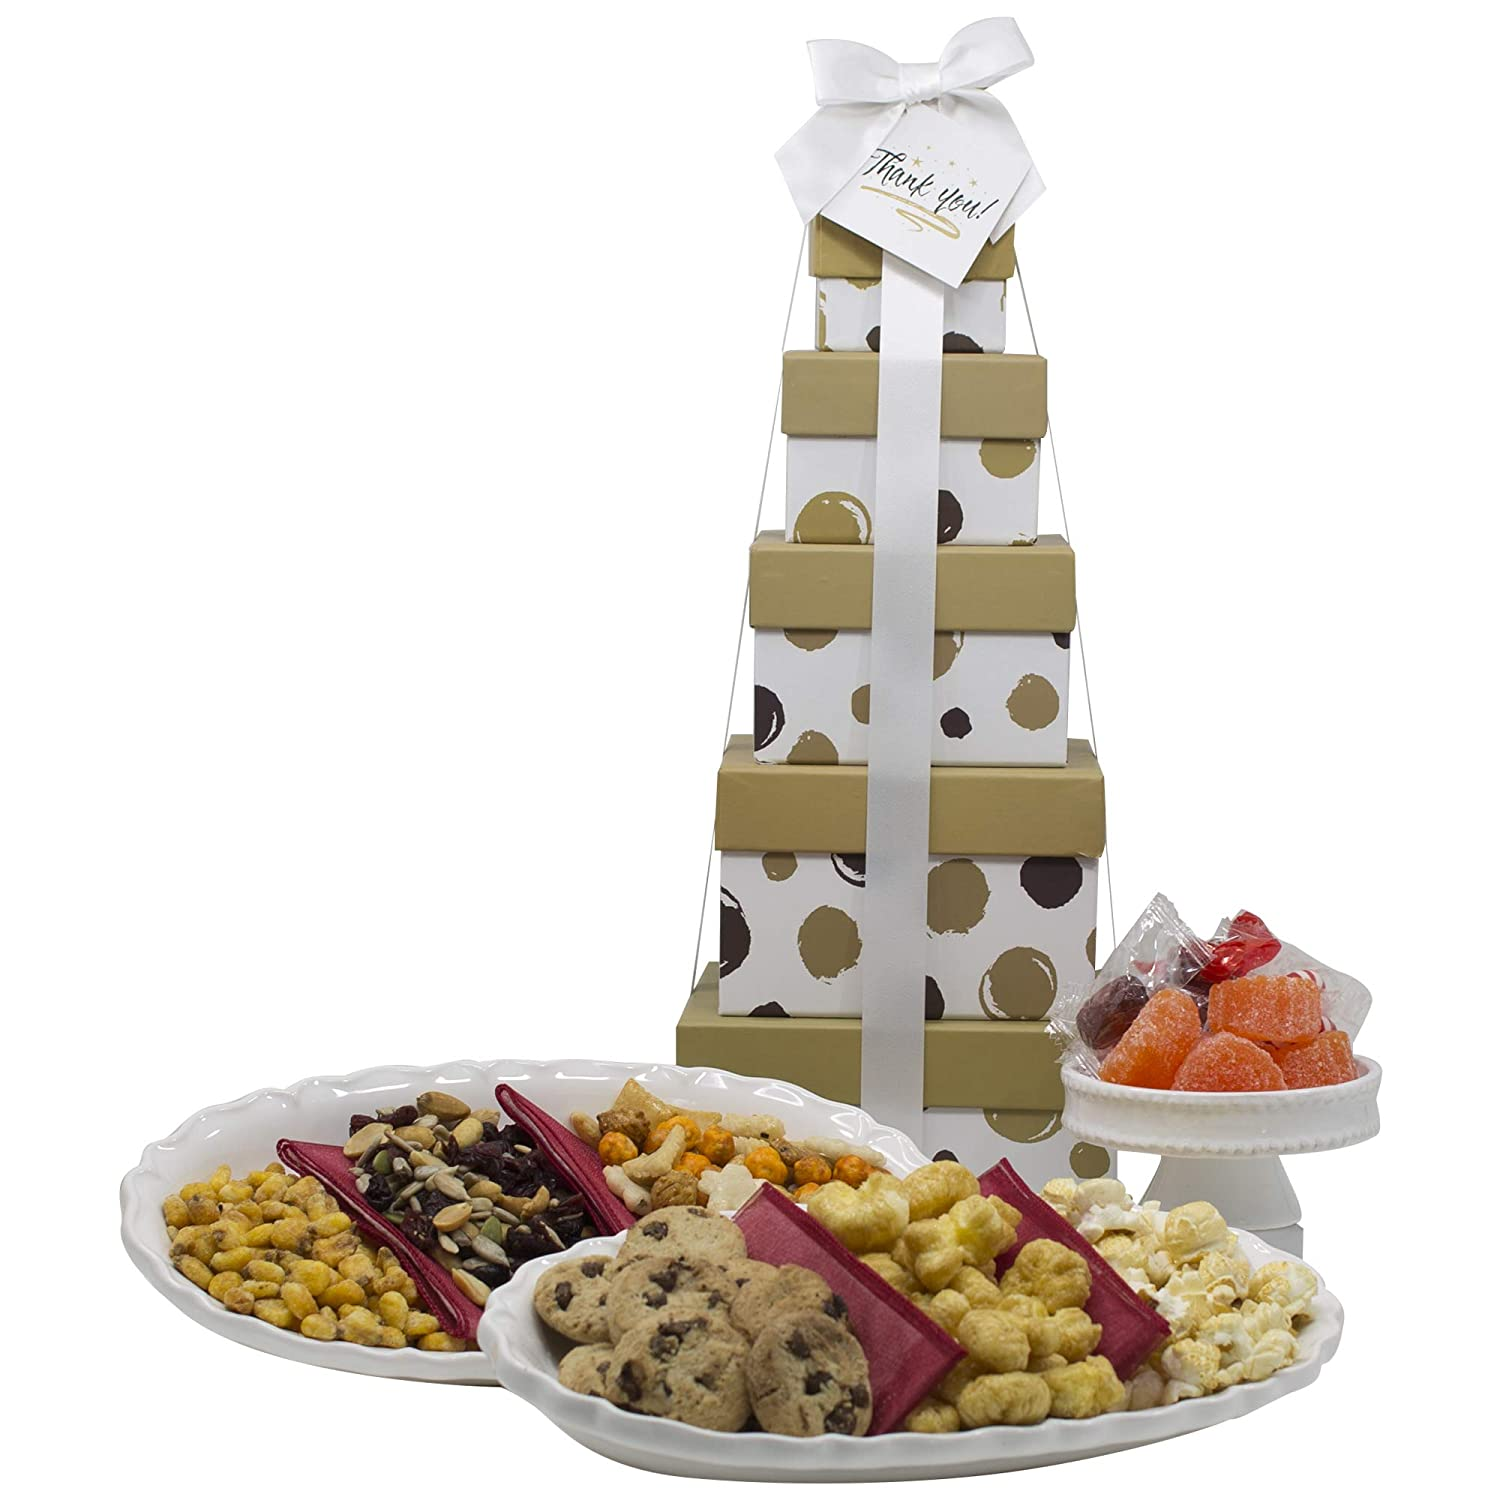 Christmas Gift Basket Box Tower - 5 Tier ALBOL Gift Baskets